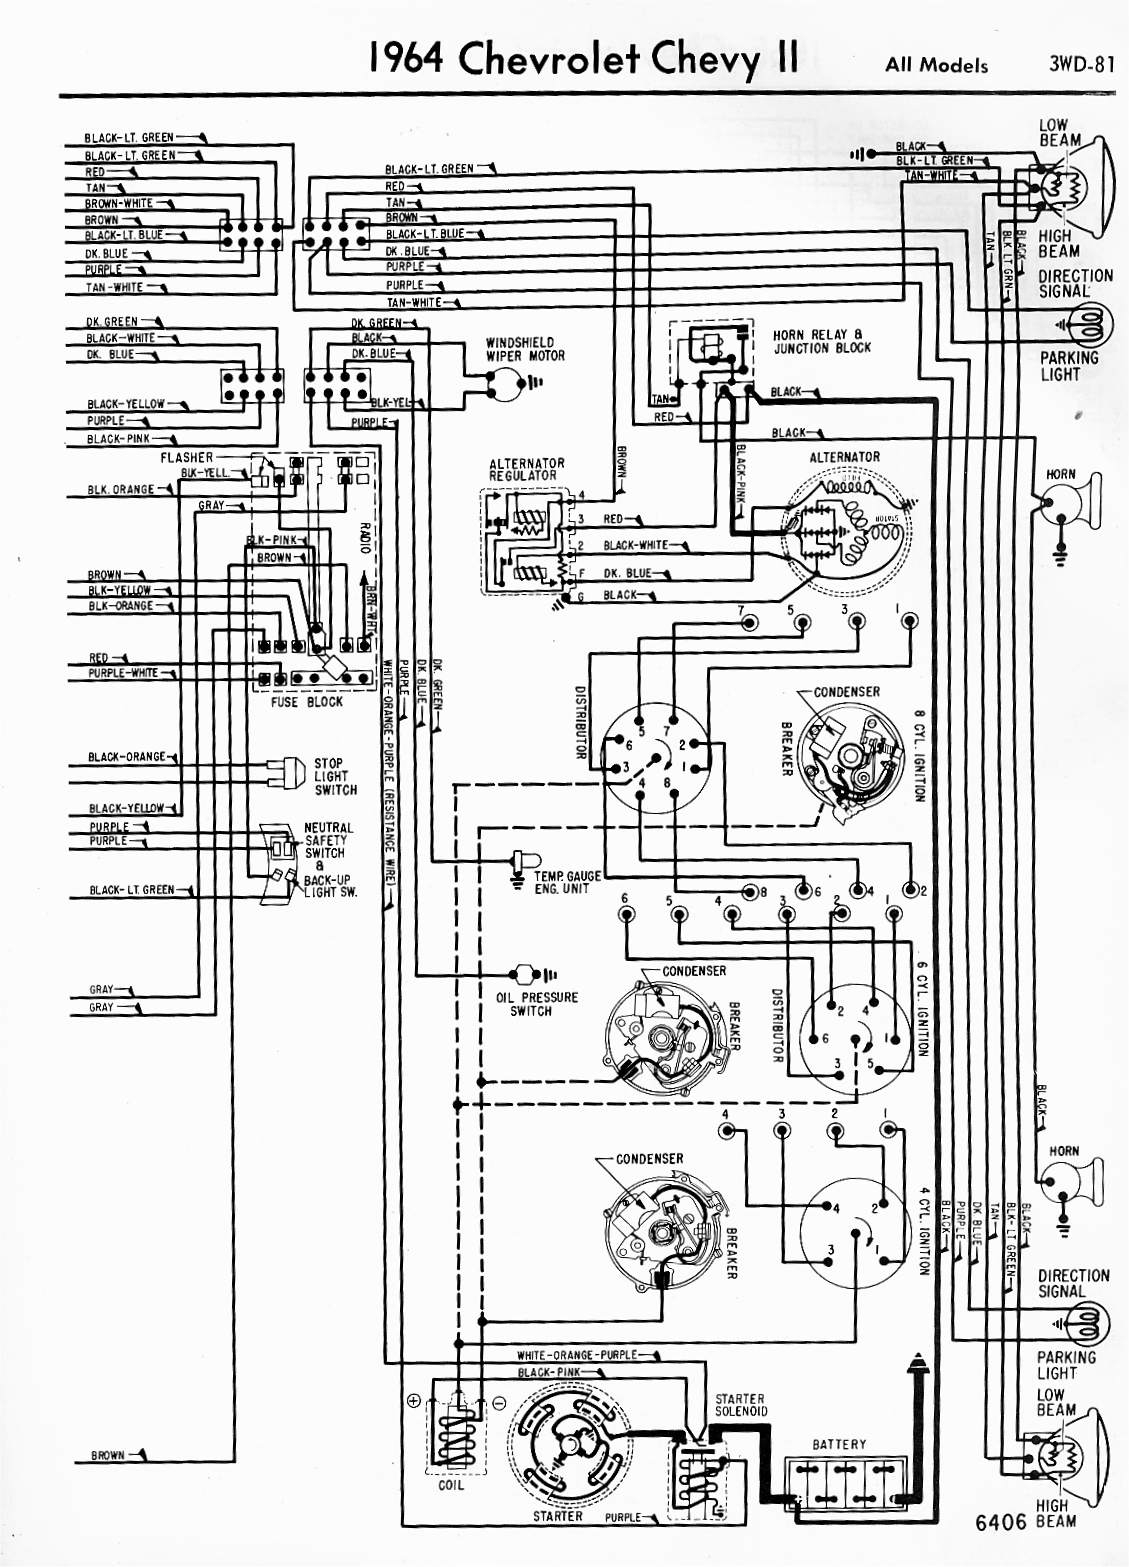 hight resolution of chevrolet cruze diagram wiring schematic 1964 chevy ii all models right 16o